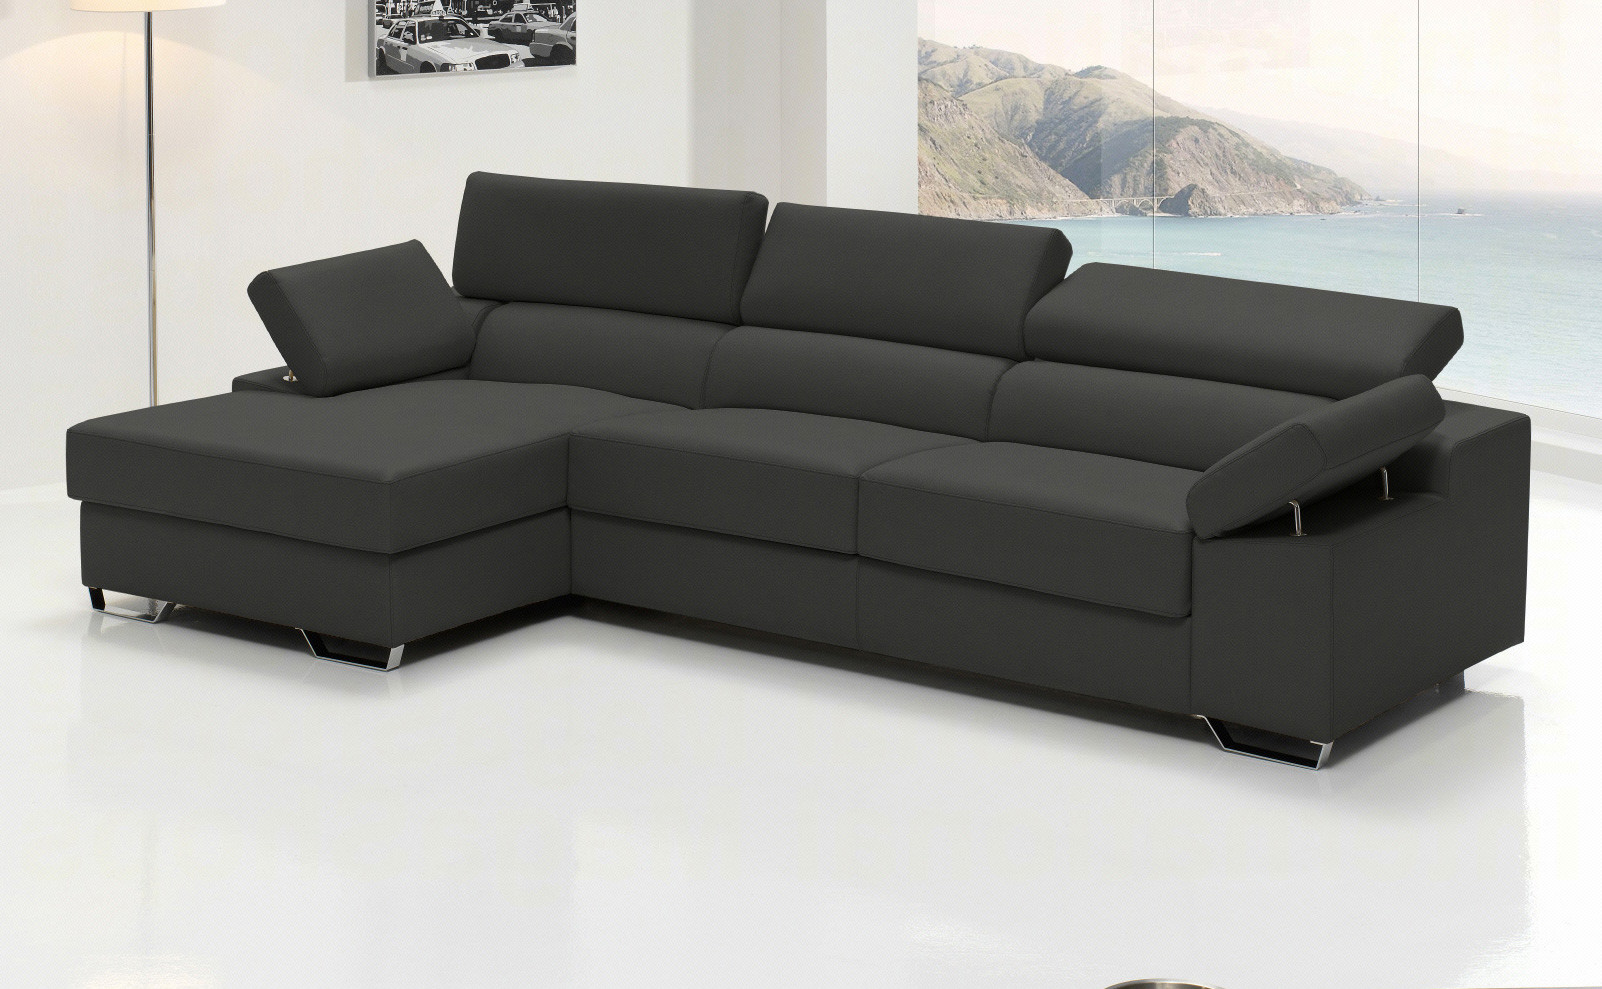 Chaise Longue Cama Baratos atractivo Chaise Longue sofa Cama Of Chaise Longue Cama Baratos Contemporáneo sofá Cama Mesmerizar sofa Chaise Longue Cama Chaise